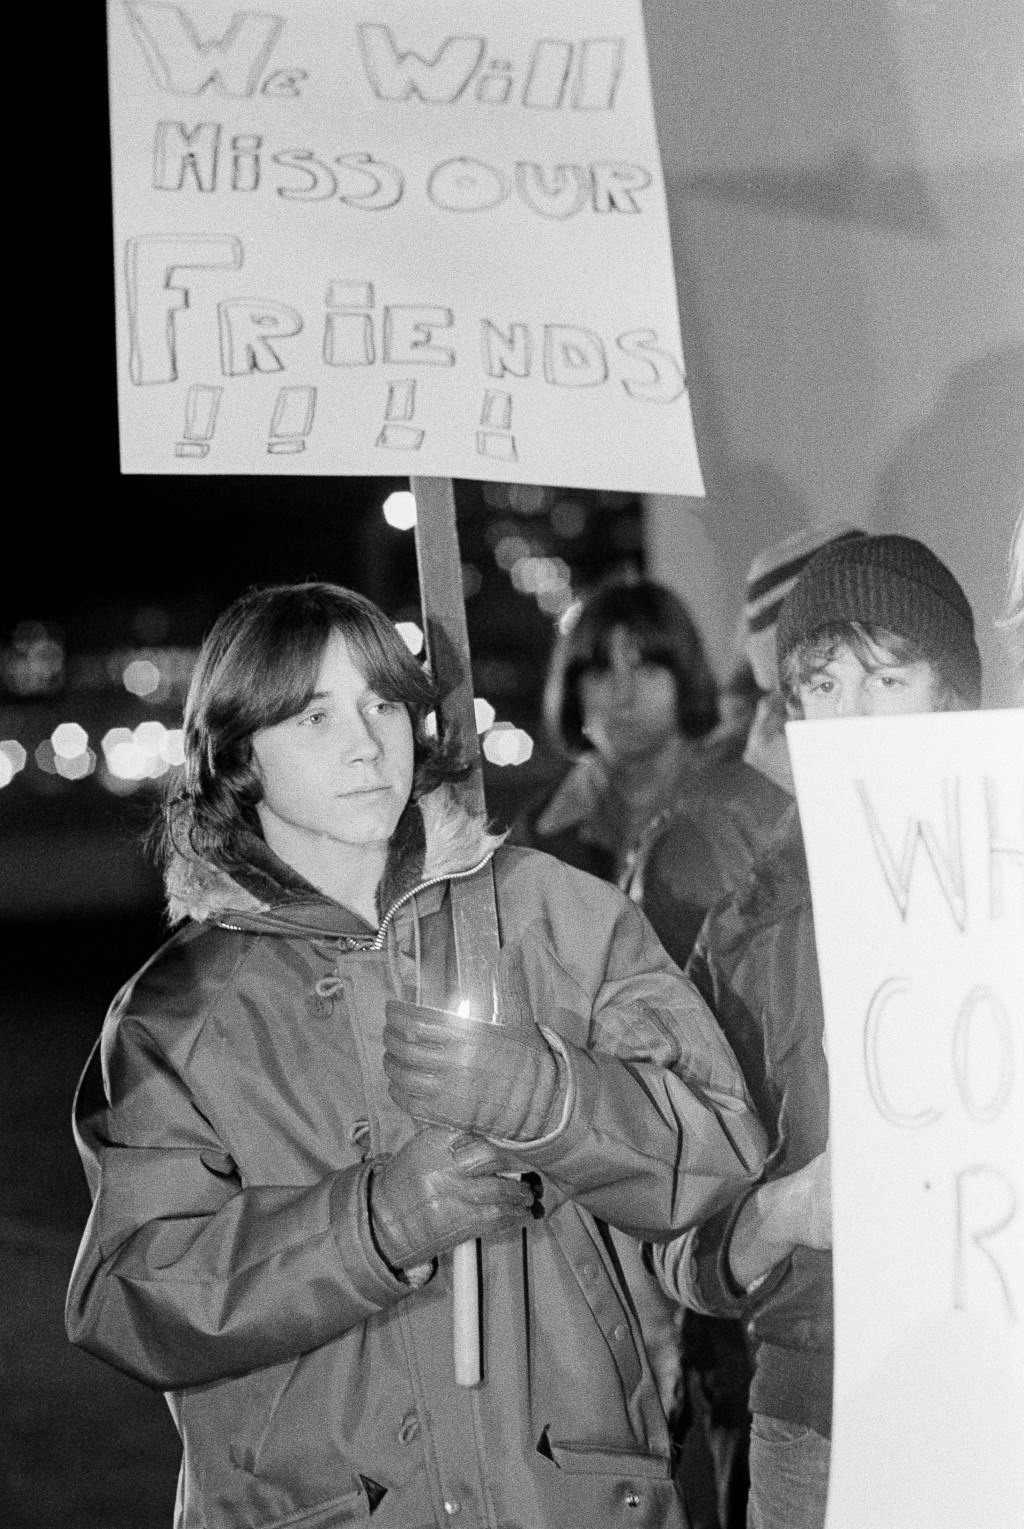 FILE - In this Dec. 4, 1979 file photo, a young man shields his candle from the wind during a memorial service for those killed during a stampede at a...